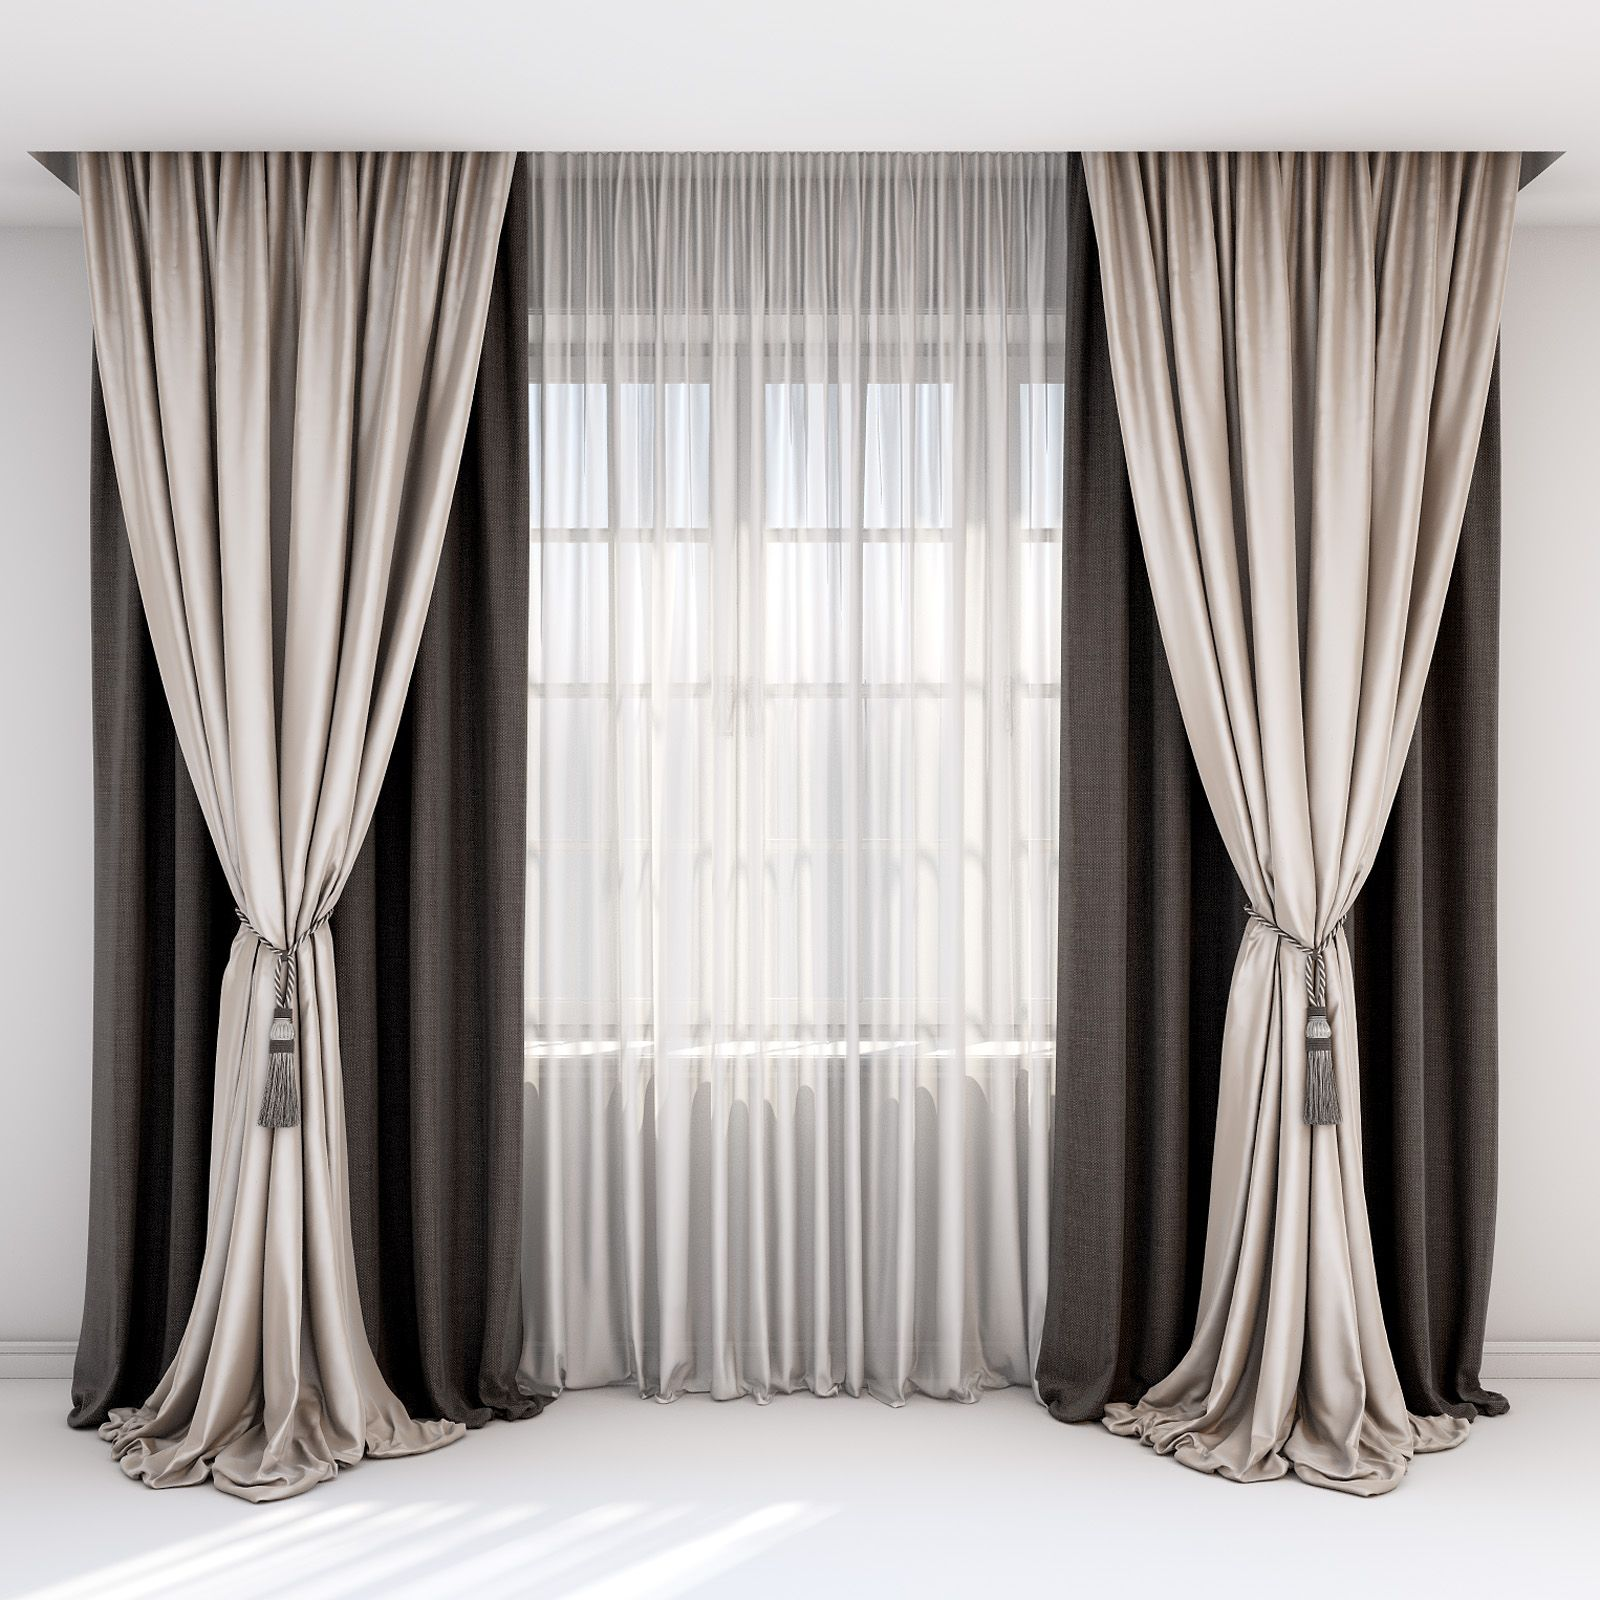 rown and beige curtains, Roman blind and window #curtains, #beige, #rown, #windo…